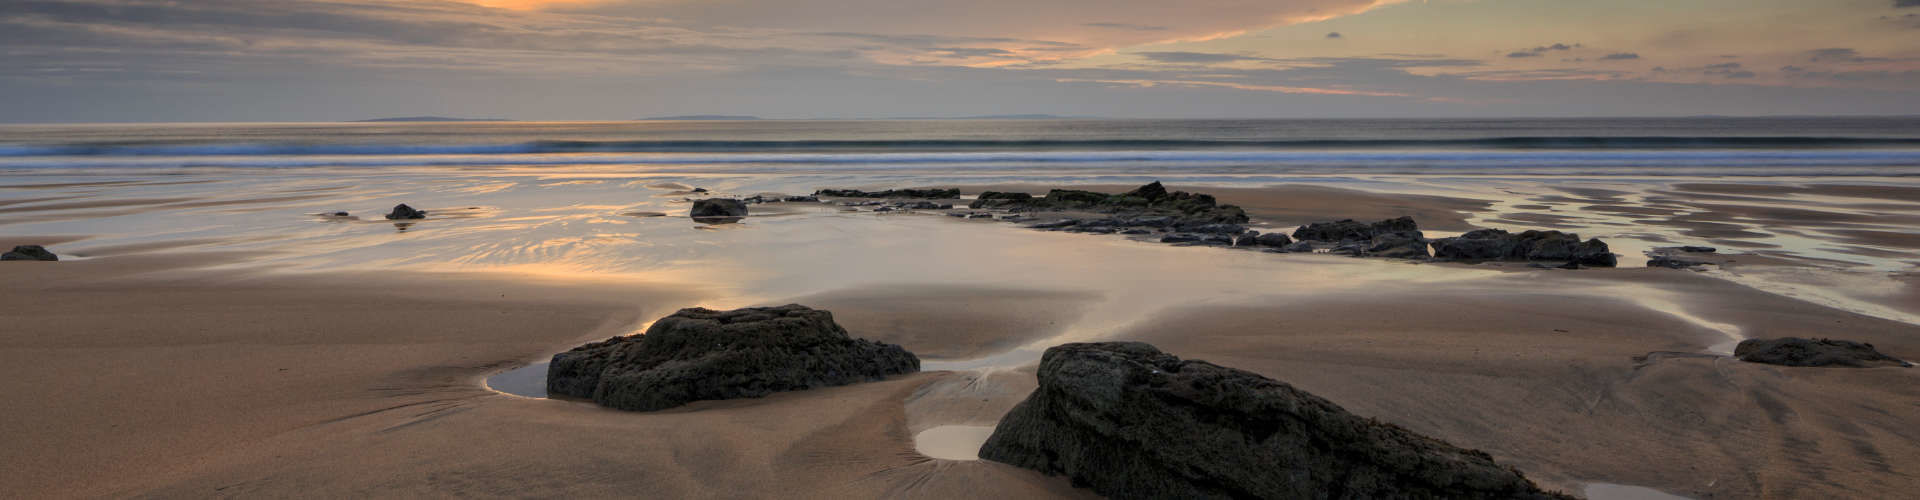 Fanore beach at sunset